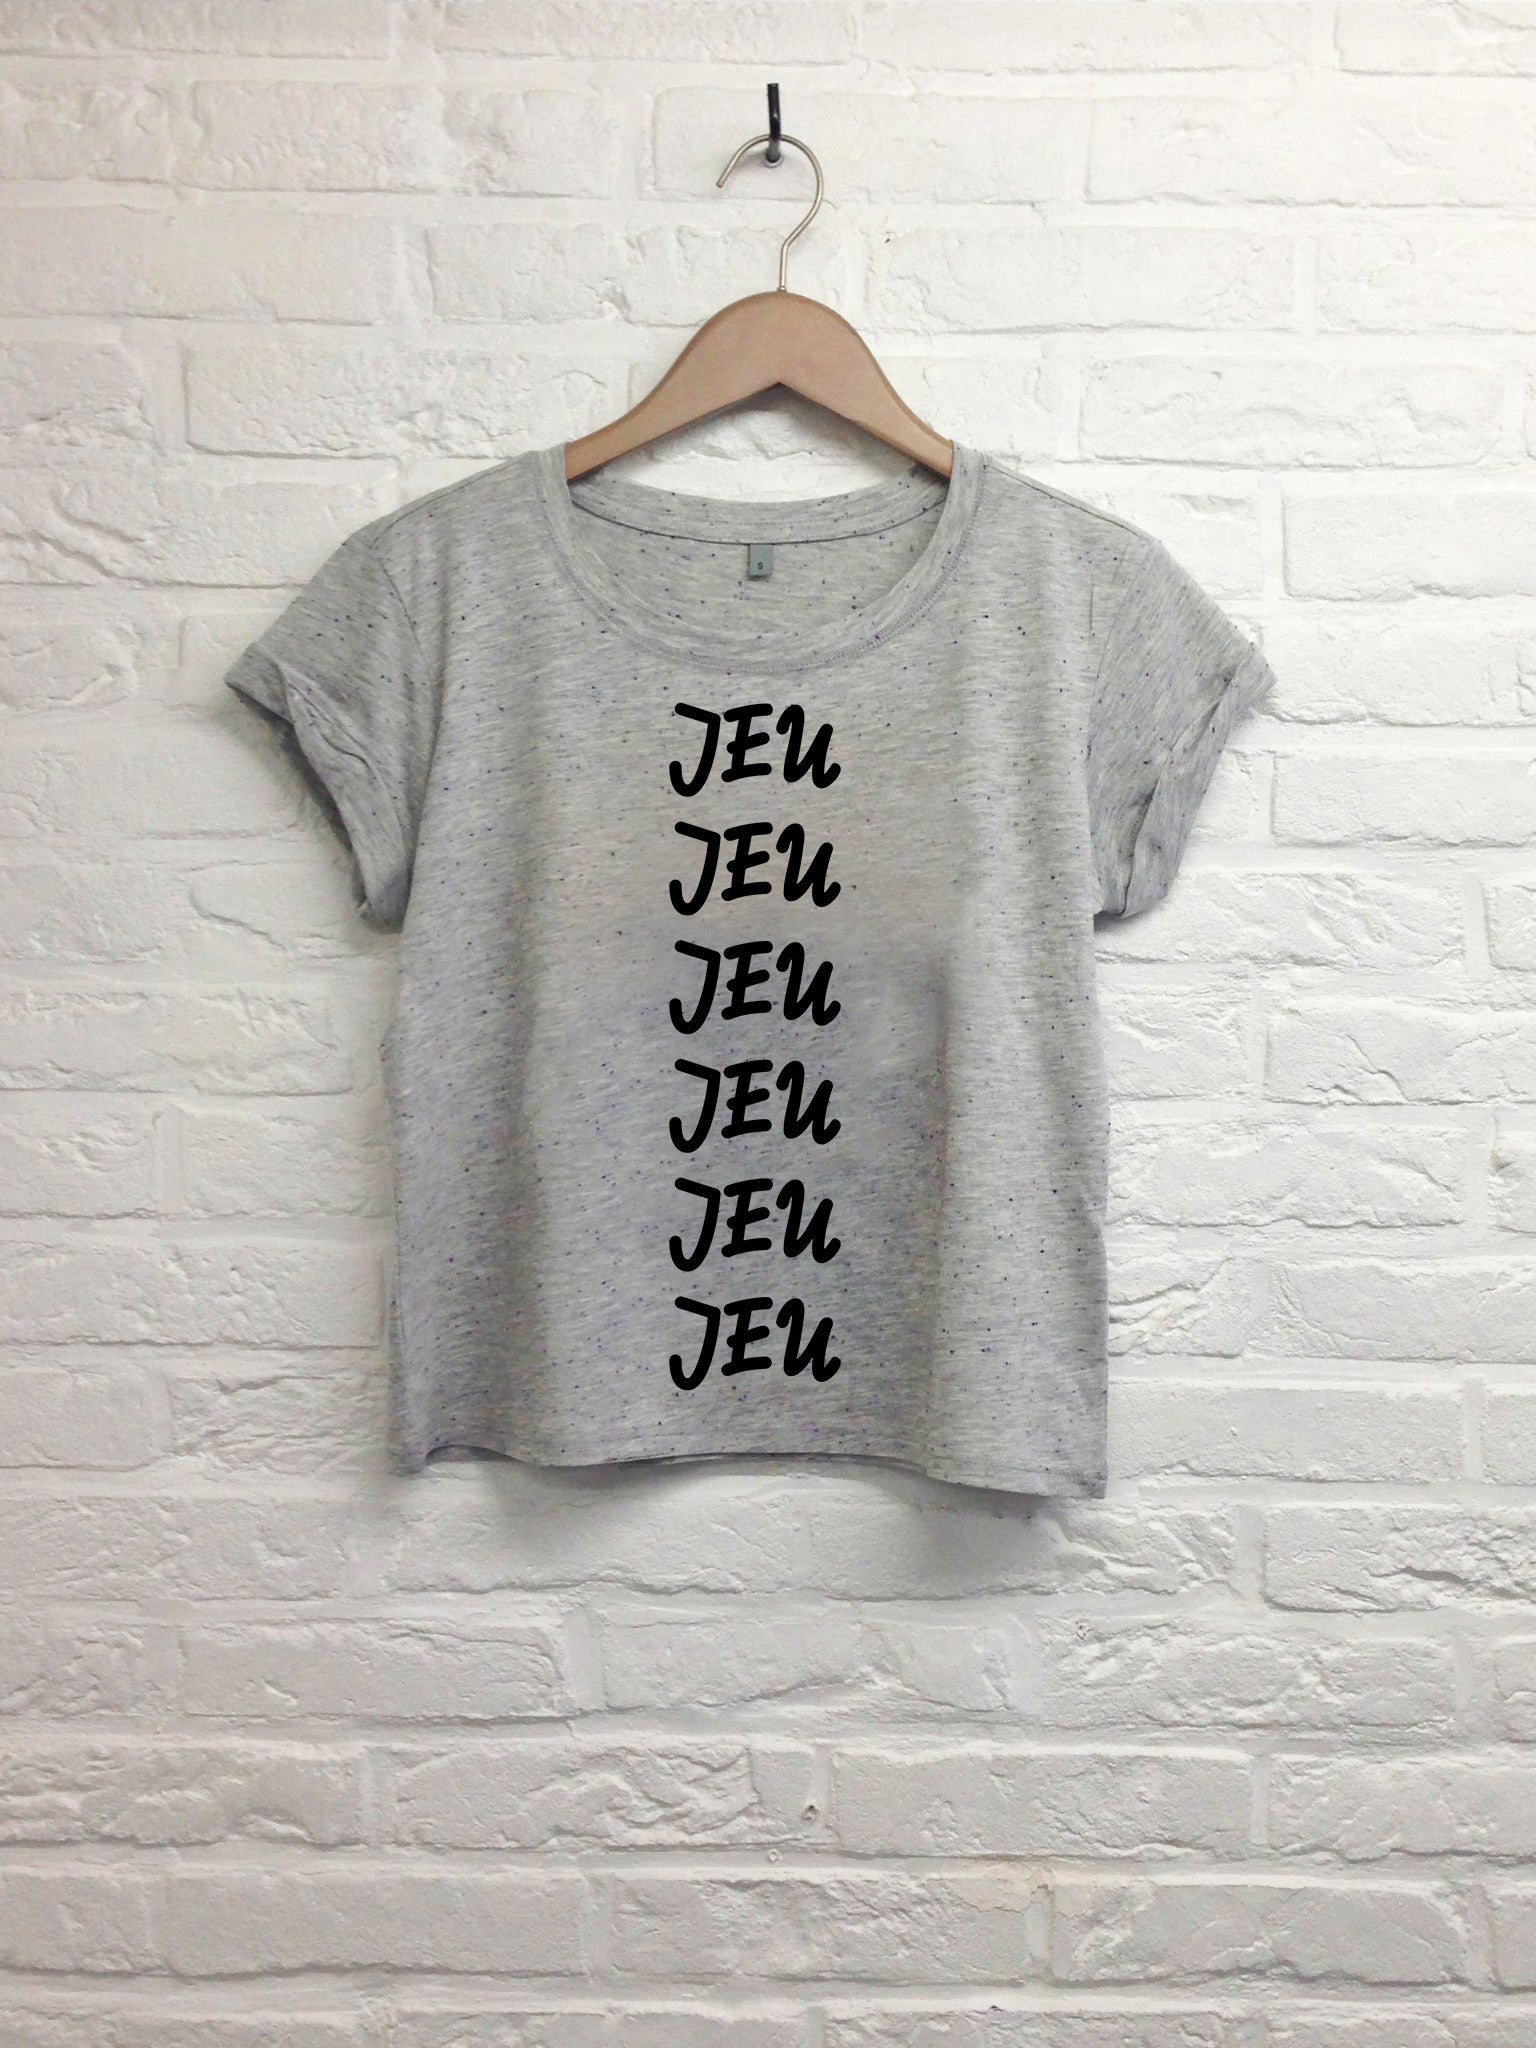 Jeu jeu jeu - Crop top speckled grey-T shirt-Atelier Amelot